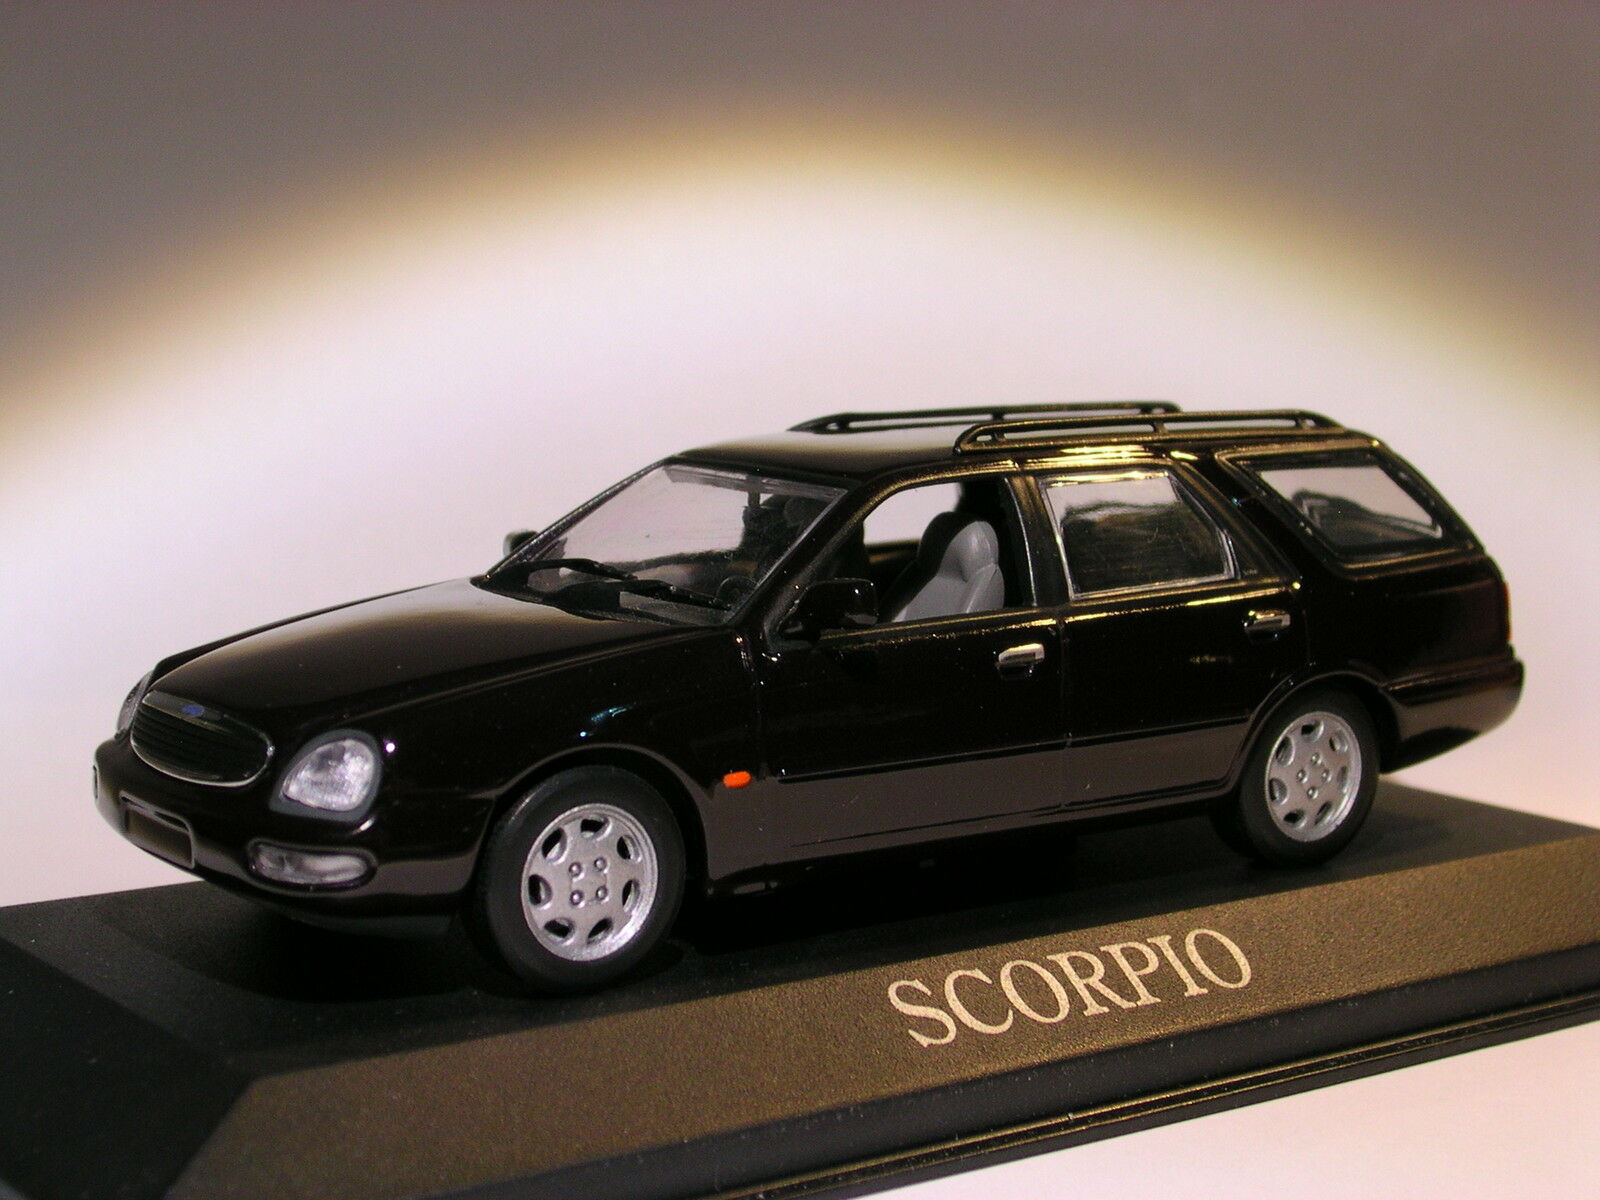 Ford Scorpio Break, Turnier, Kombi Kit 1995 choose 1 43 of Minichamps